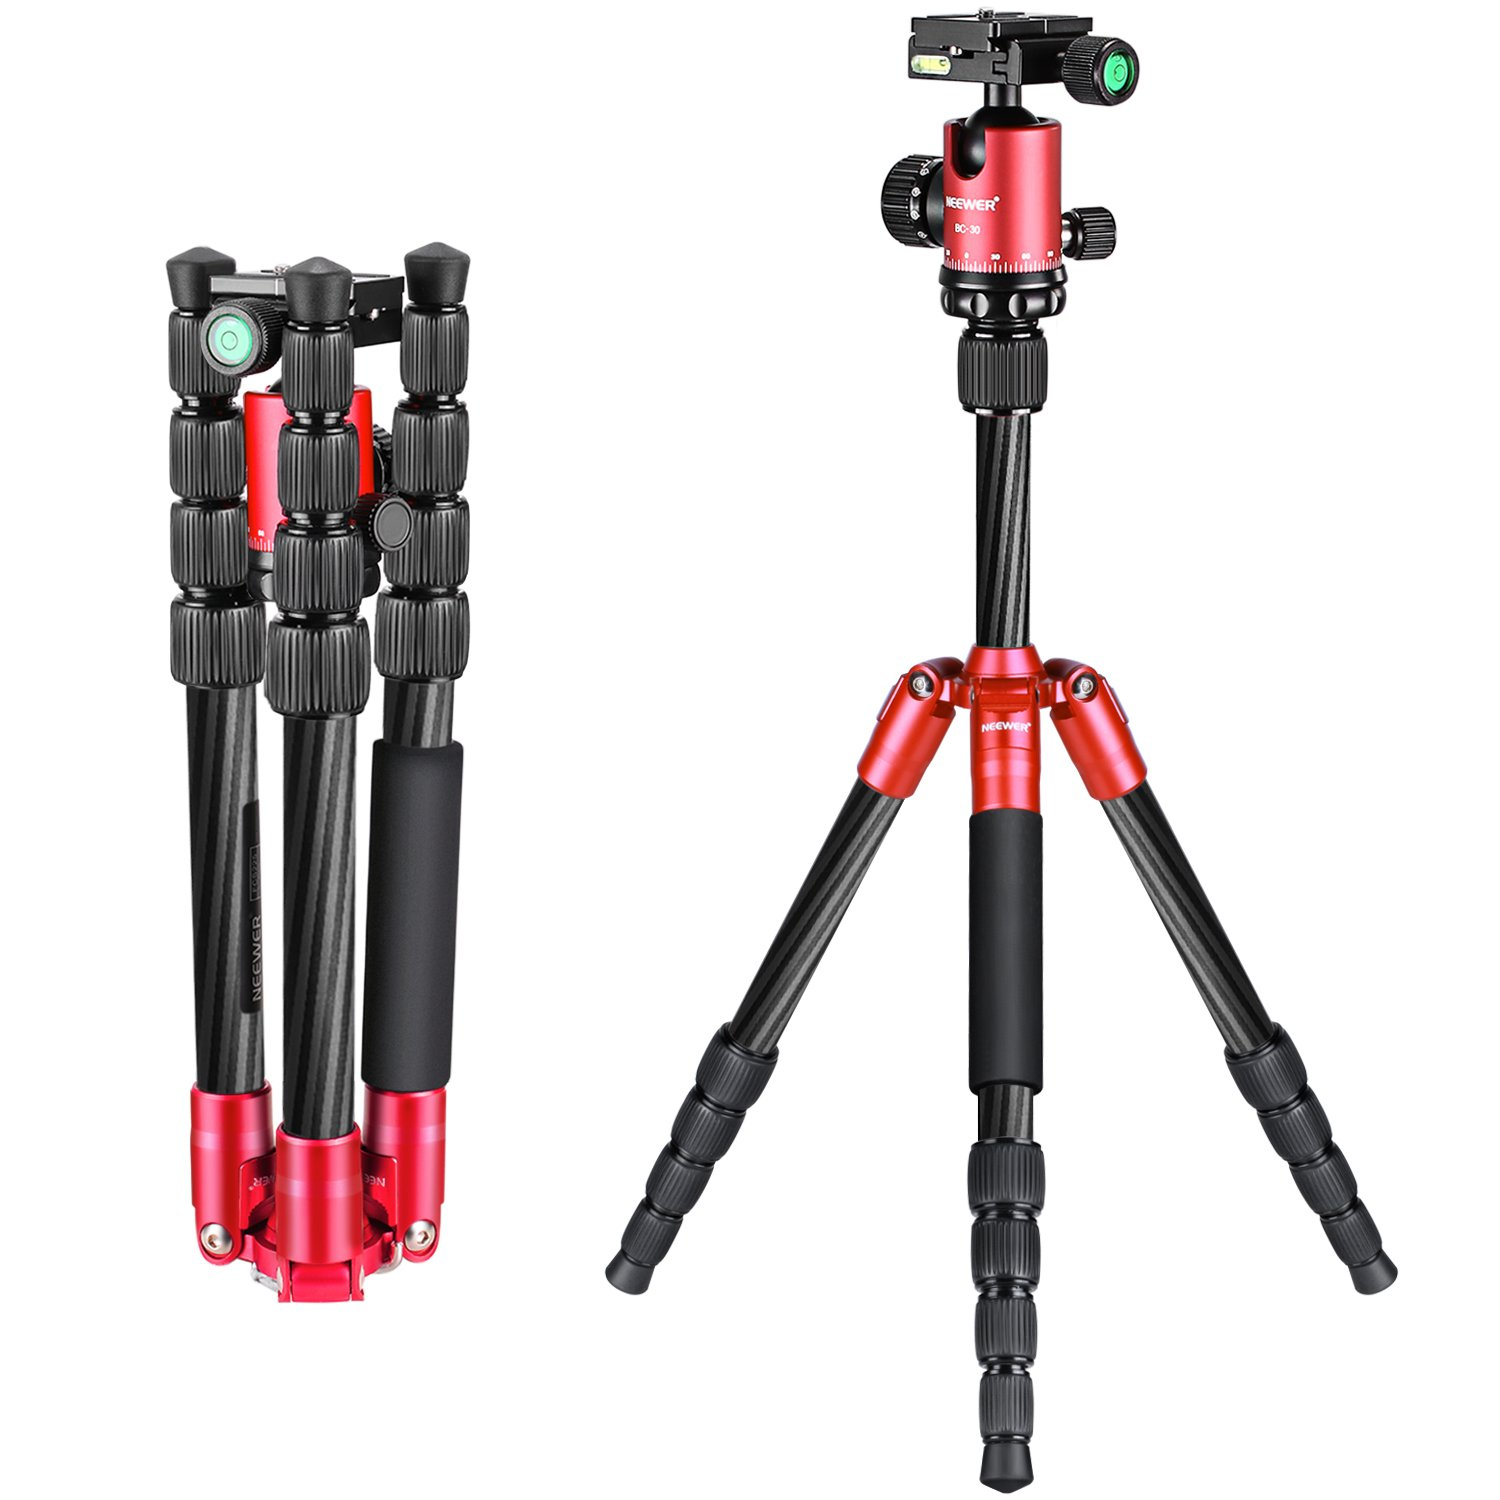 Neewer Carbon Fiber 56 inches/141 centimeters Portable Mini Tripod with 360 Degree Ball Head,1/4 inches Quick Release Plate, Bag for Canon Nikon Sony Camera, Camcorder, up to 6.6 pounds/3 kilograms by Neewer